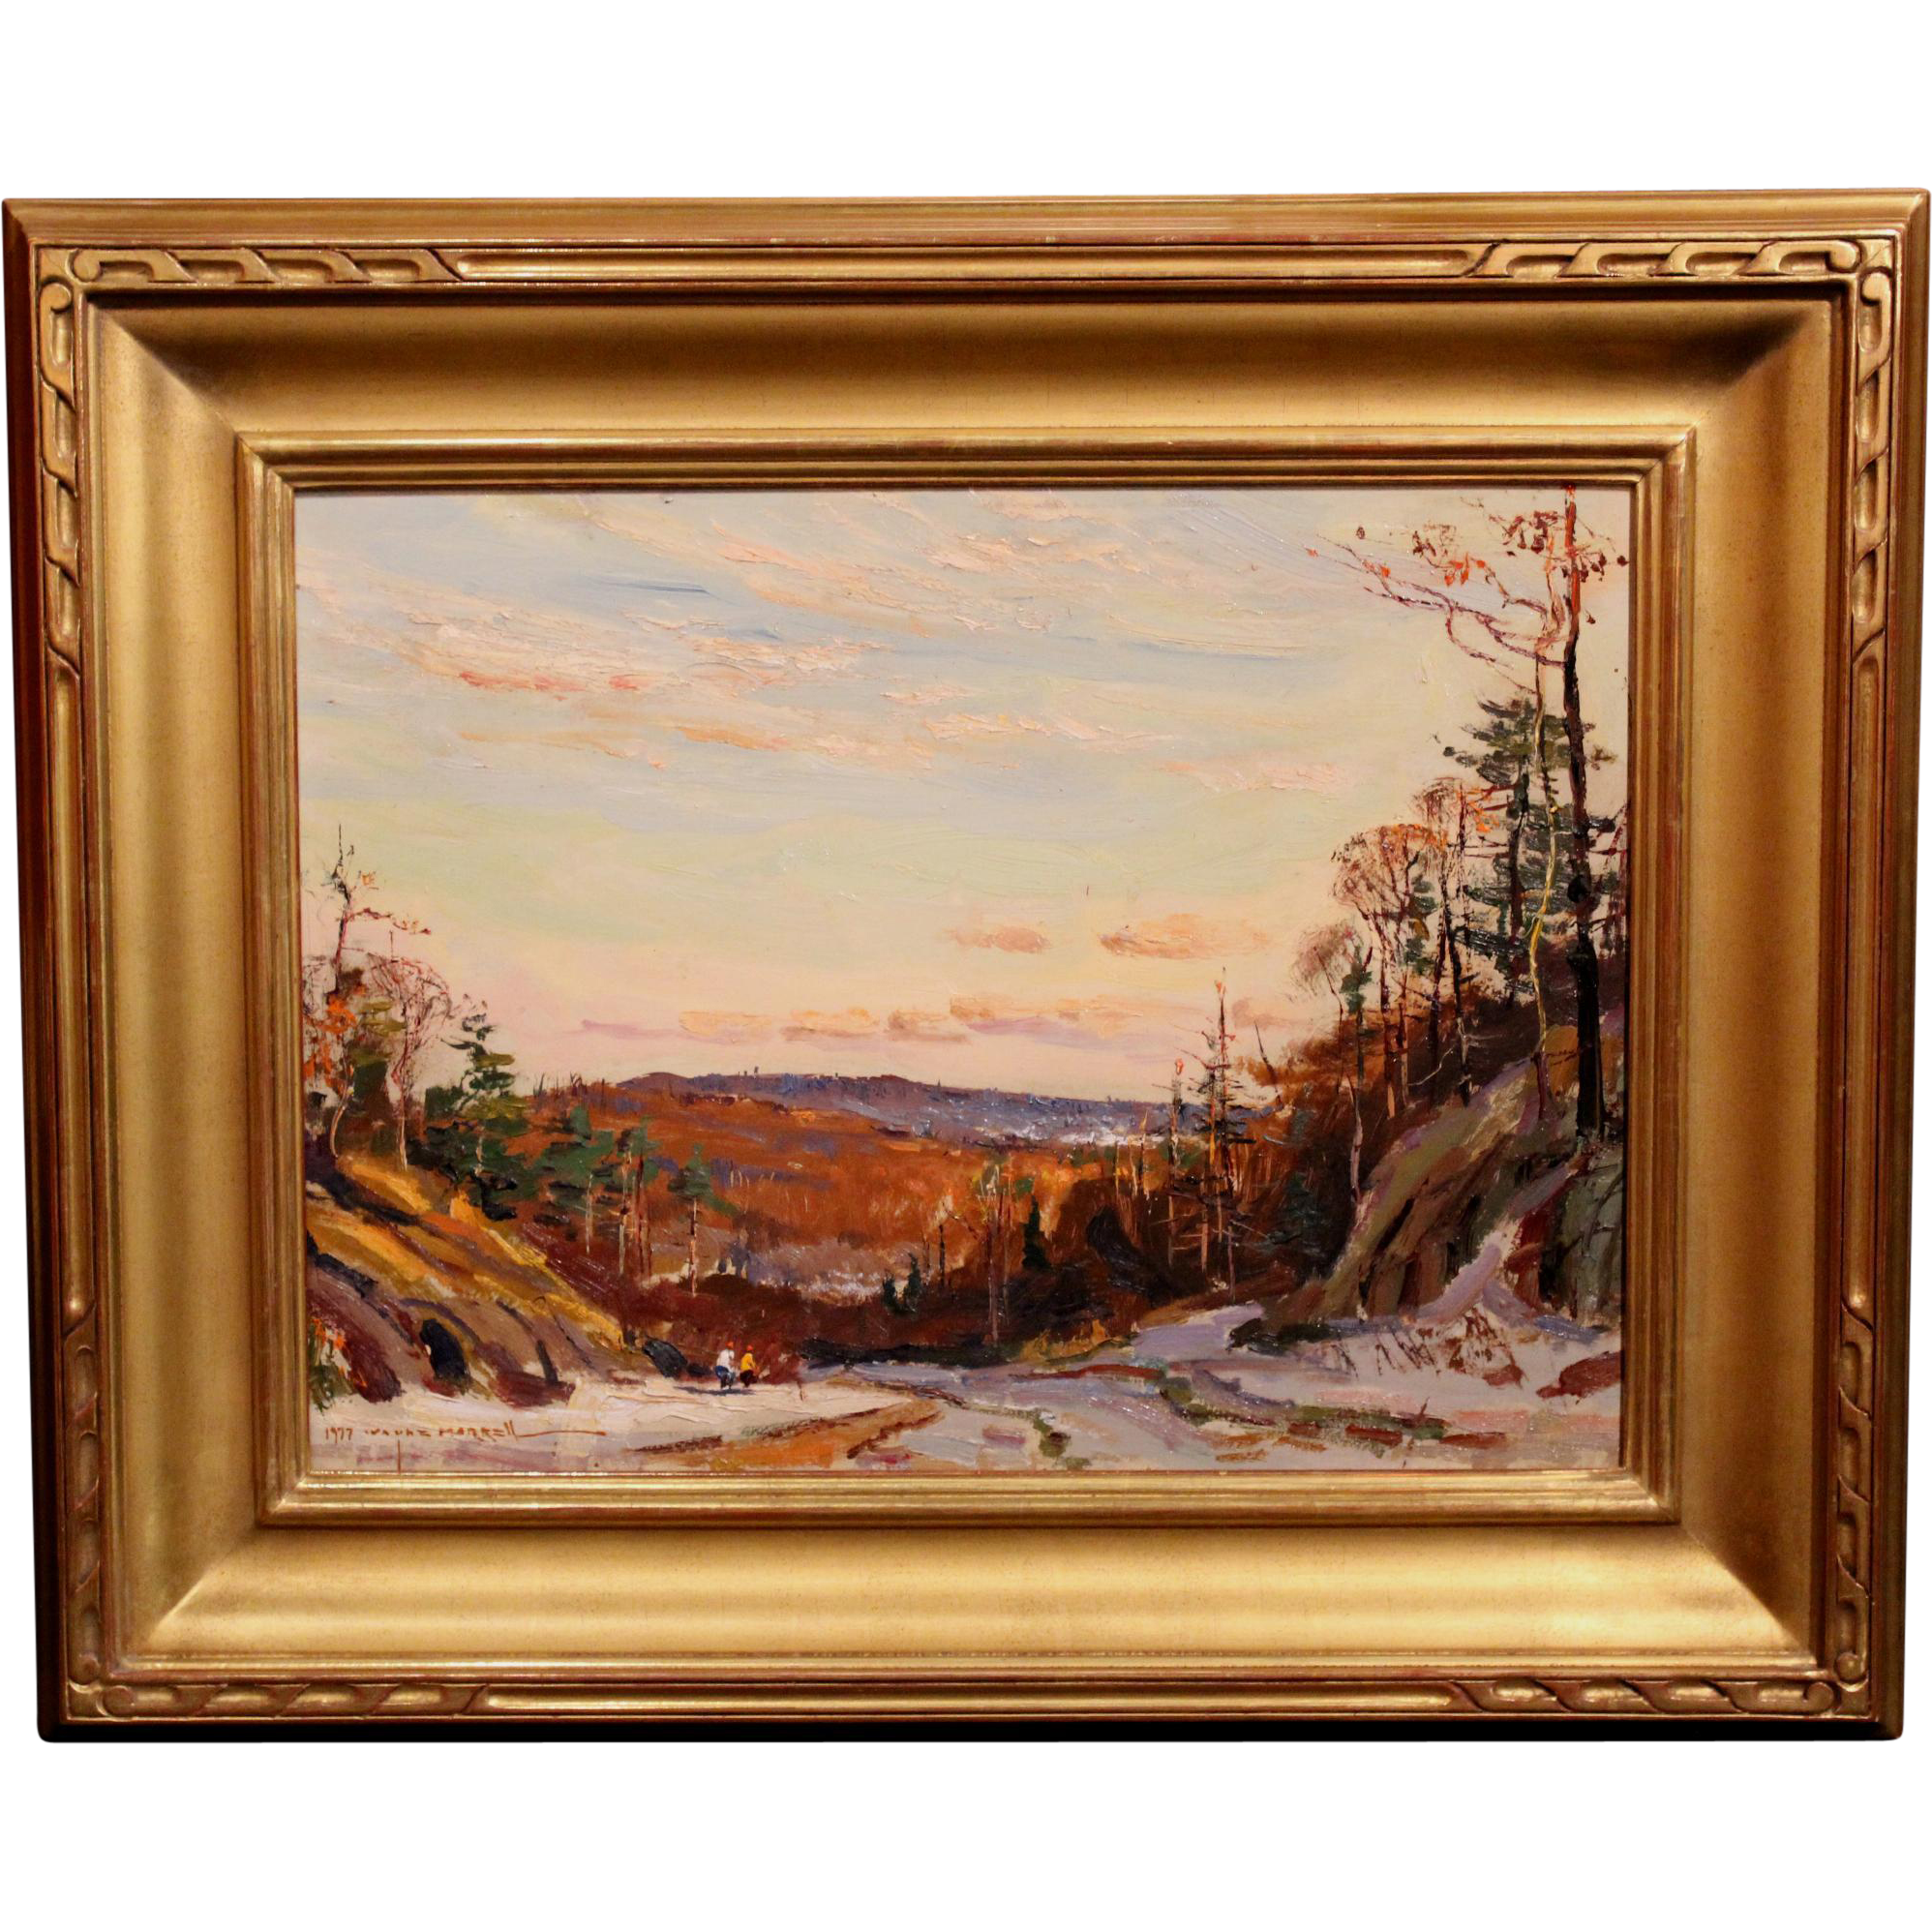 Wayne Beam Morrell Oil Painting - Winter Landscape 1977